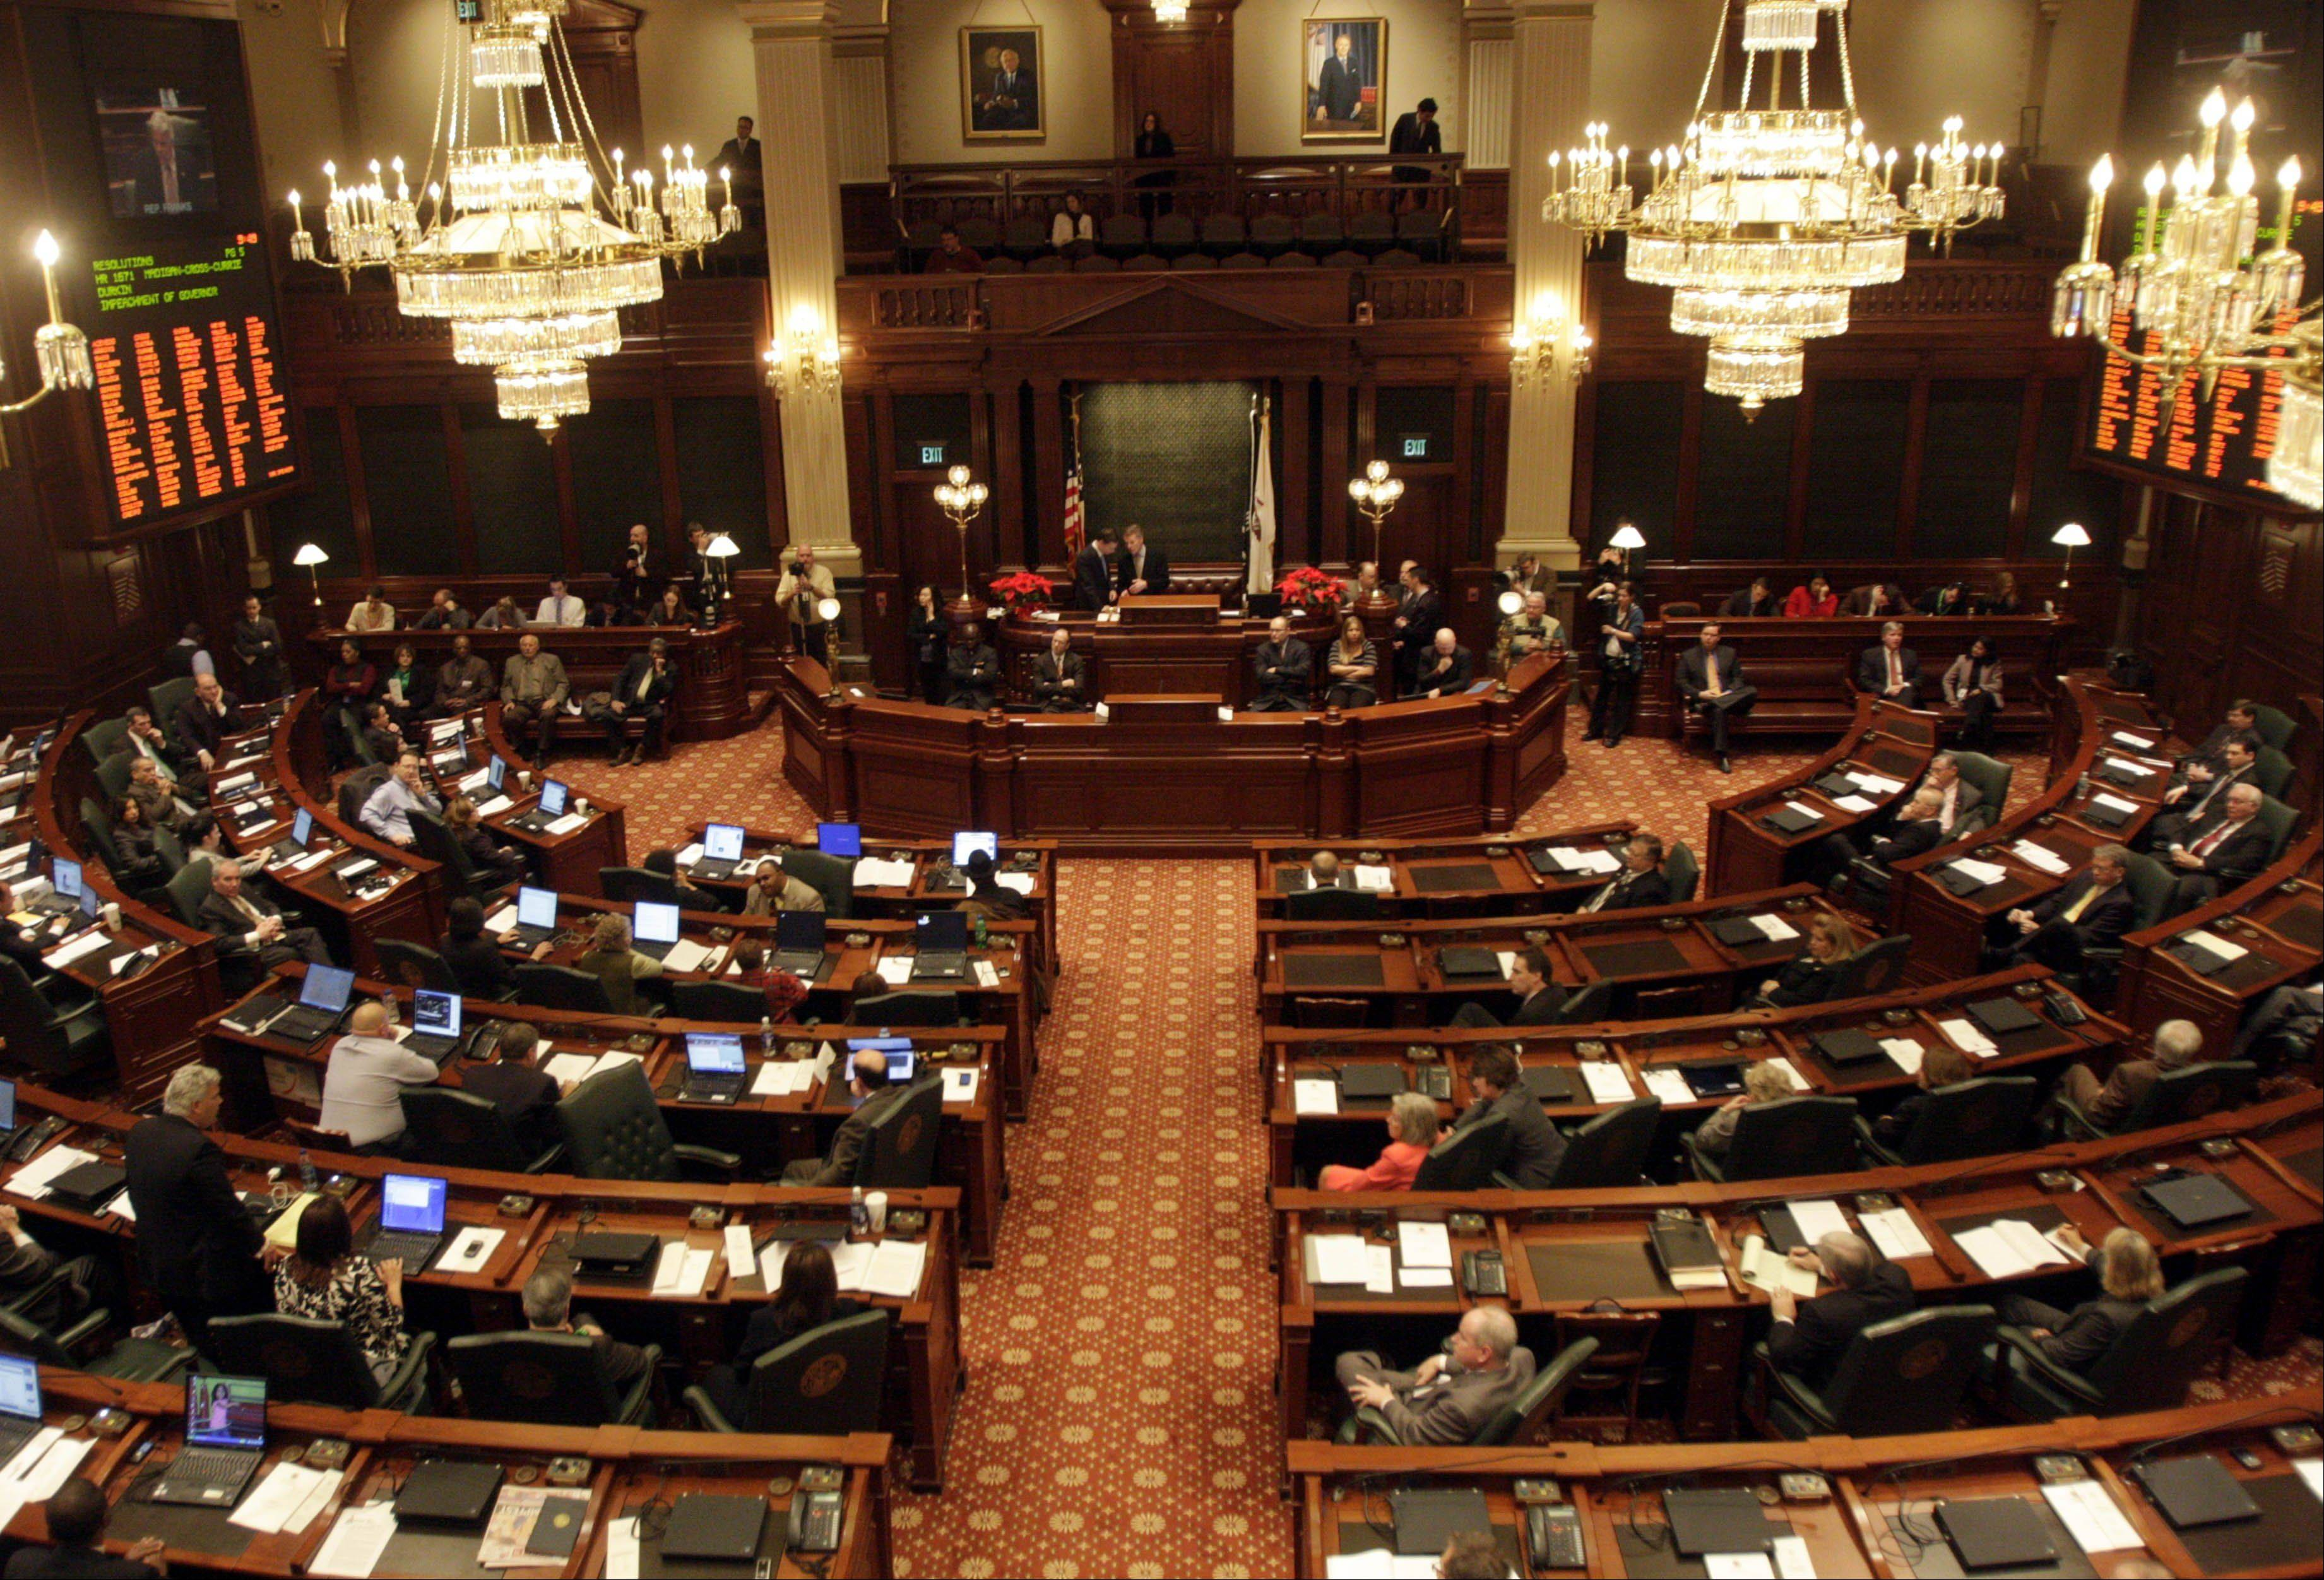 Illinois lawmakers' salaries, stipends, allowances and mileage reimbursements combined to cost taxpayers almost $15 million in 2011, with some of the perks adding to the state's pension obligations.